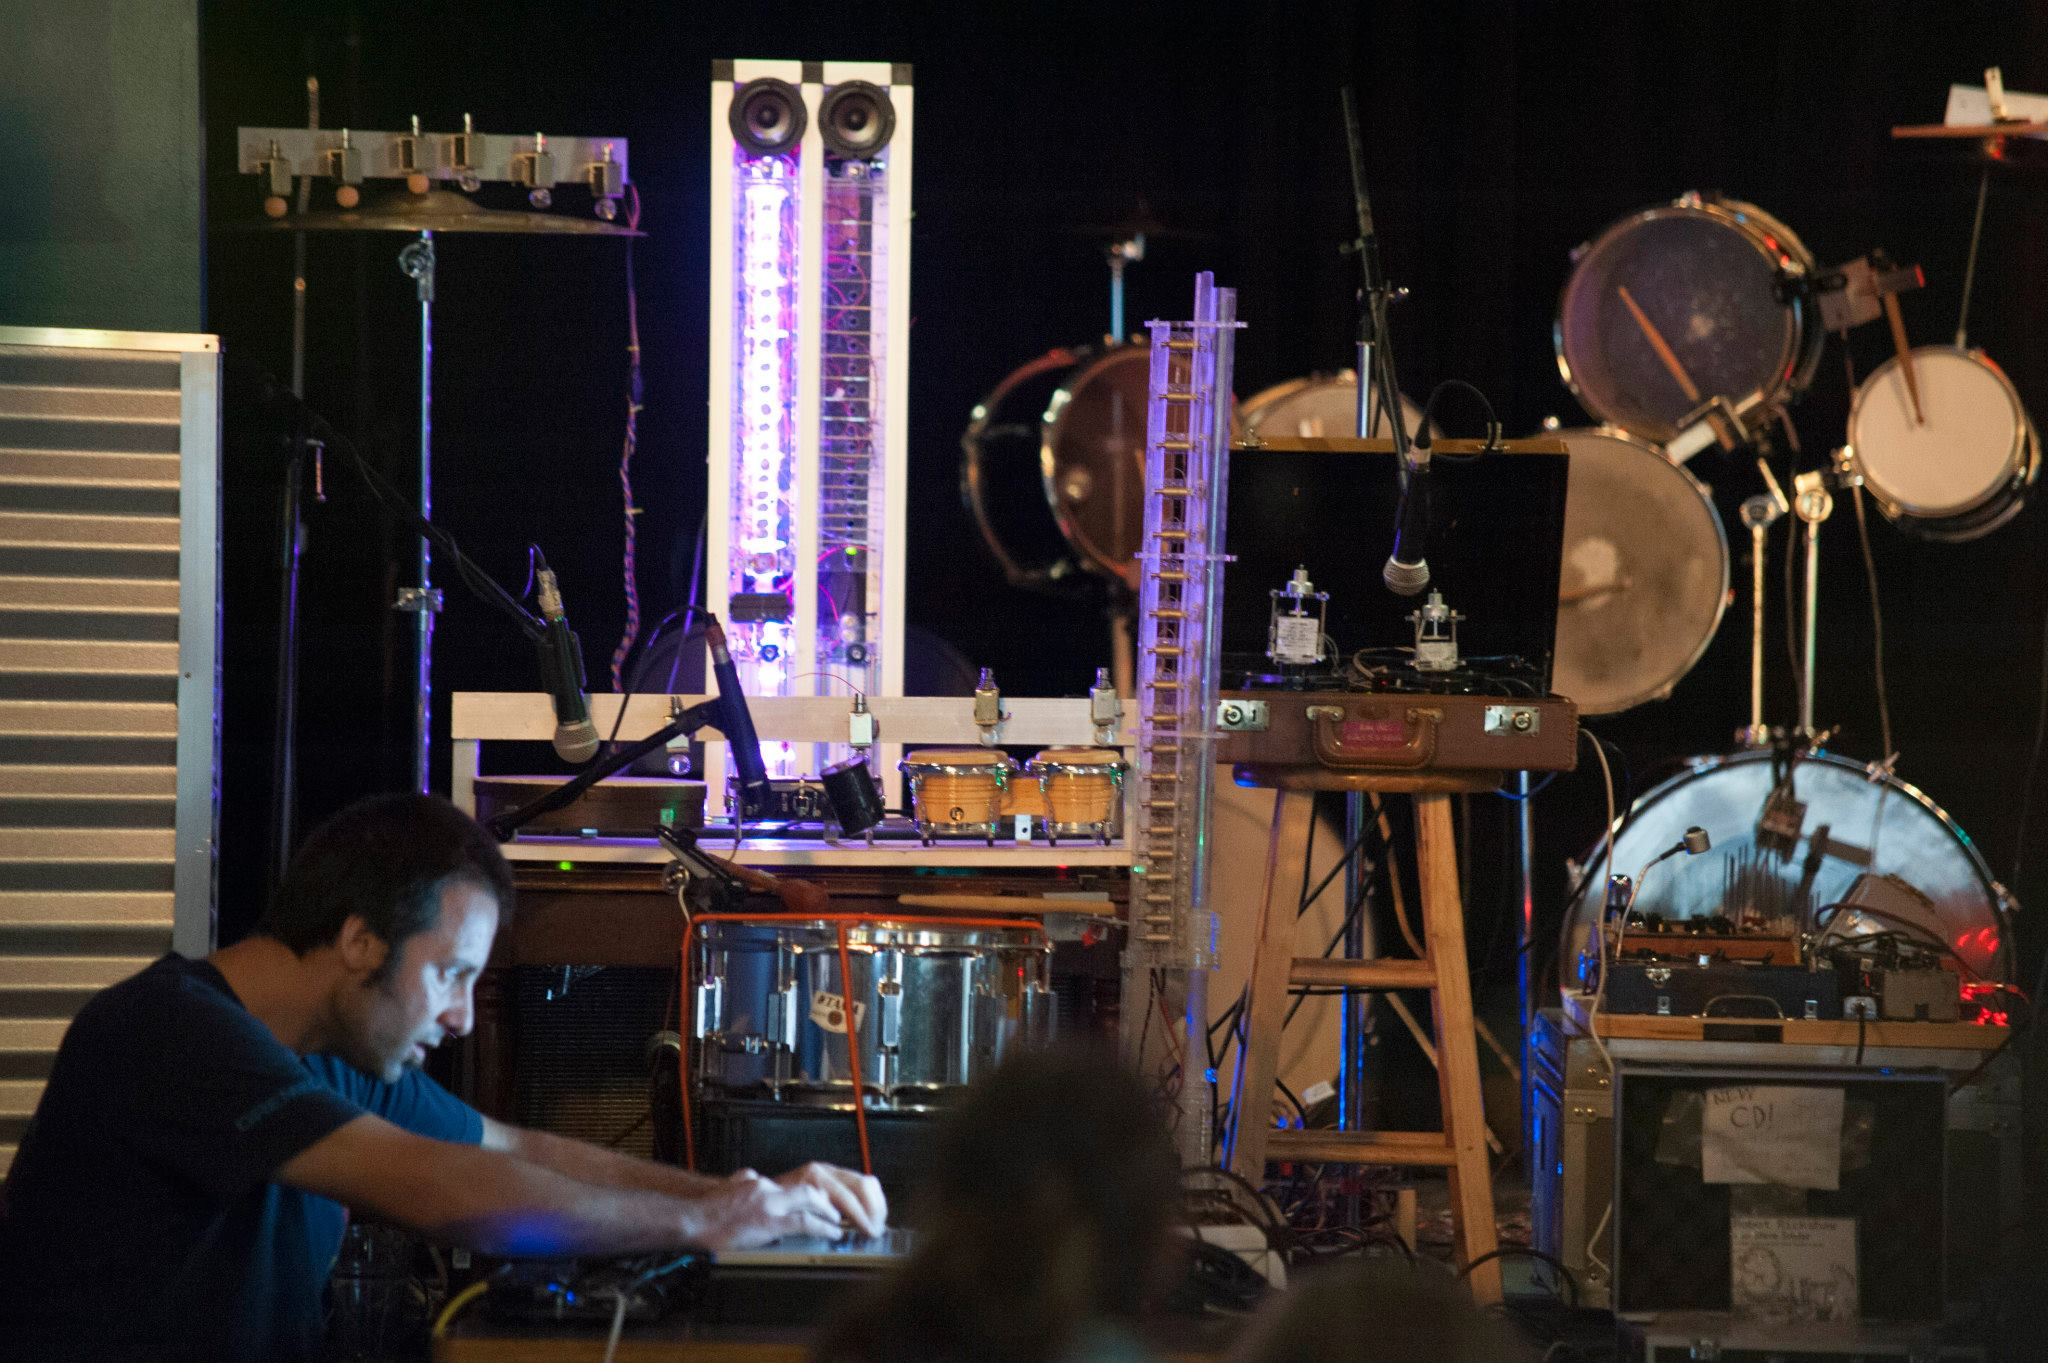 Troy Rogers (aka Robot Rickshaw) performs with his band of robotic musical instruments at Beaner's Central in Duluth, MN.